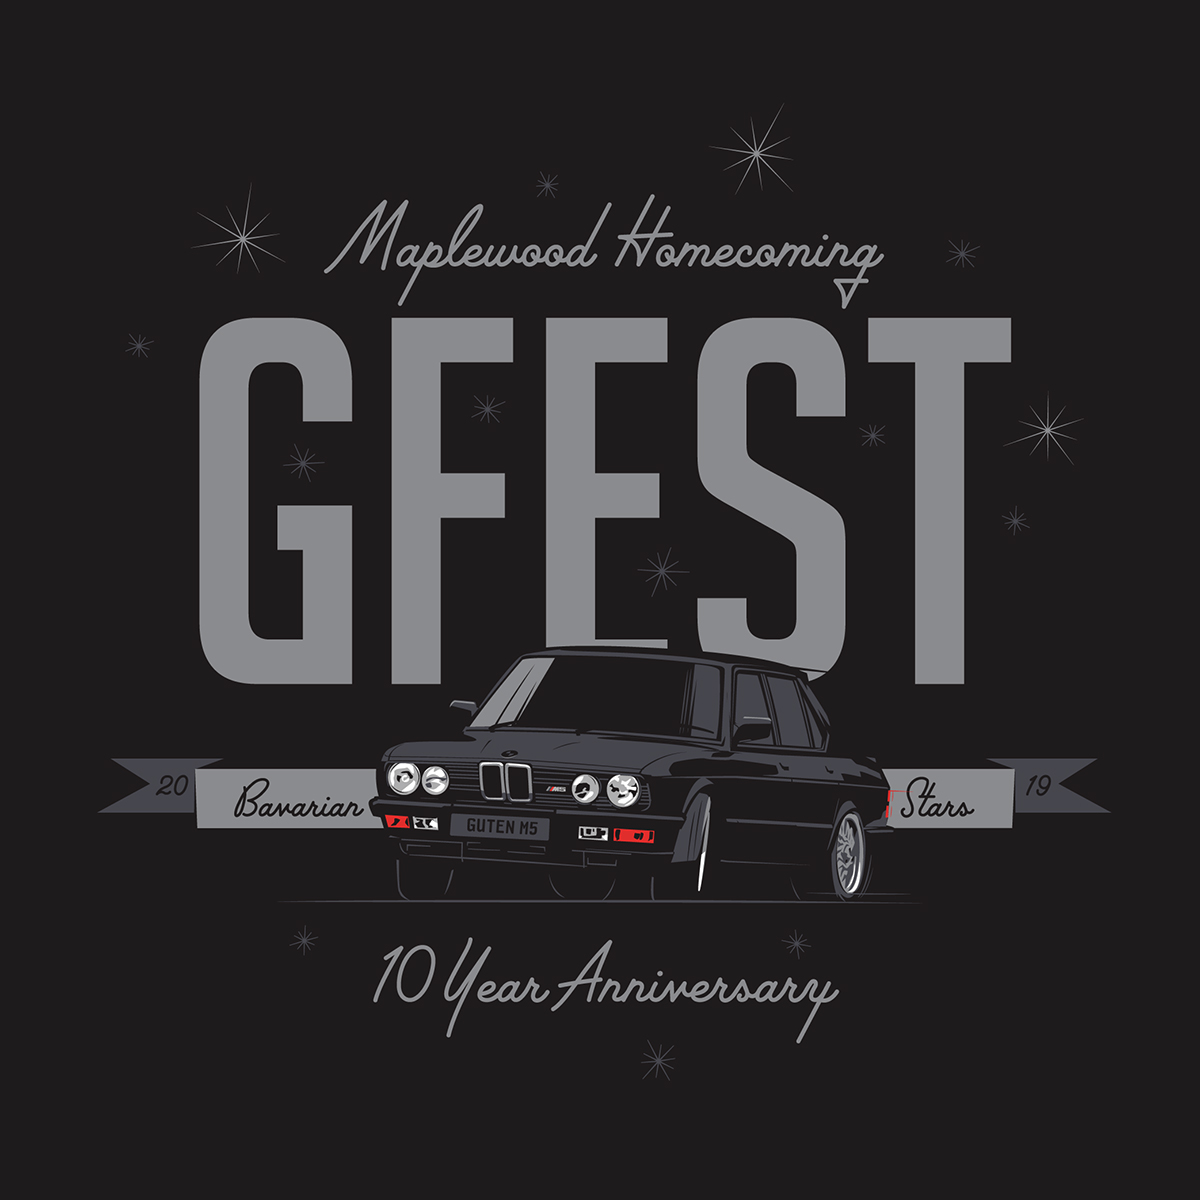 Gutenfest car gathering - JuneGfest - short for Gutenfest is the annual get together for car enthusiasts brought to you by Guten Parts + Service. Everything from daily drivers to rare collectibles. It's about getting the community of car lovers together in person.